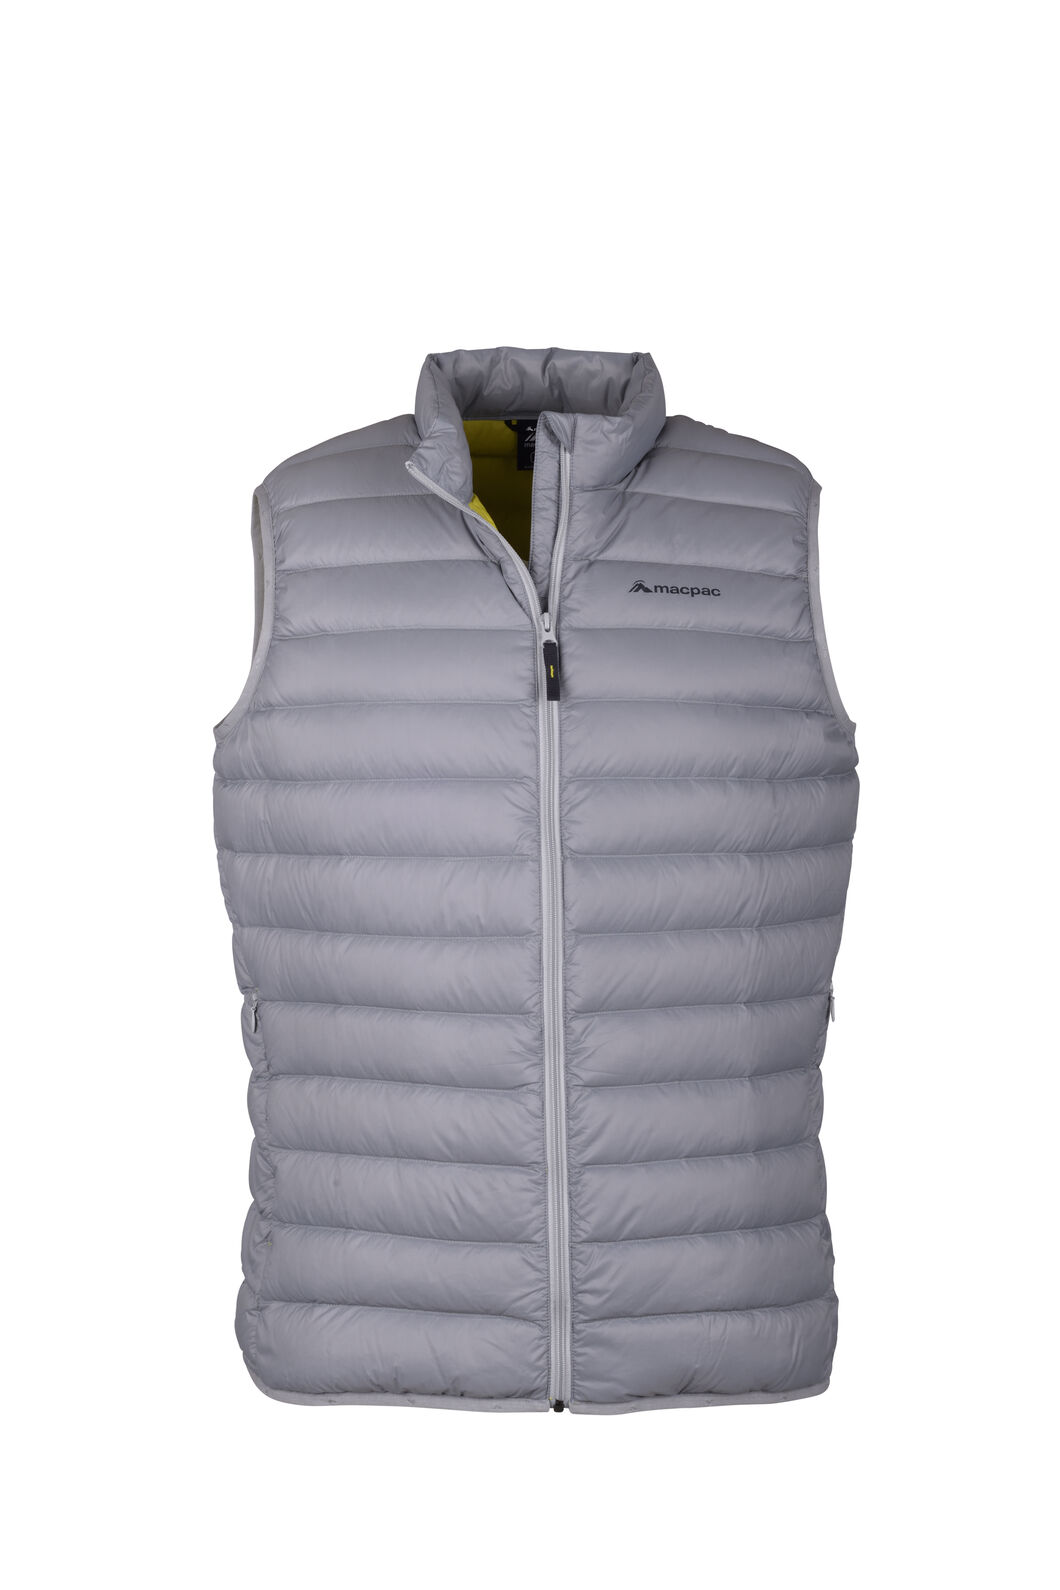 Macpac Uber Light Down Vest — Men's, Monument, hi-res